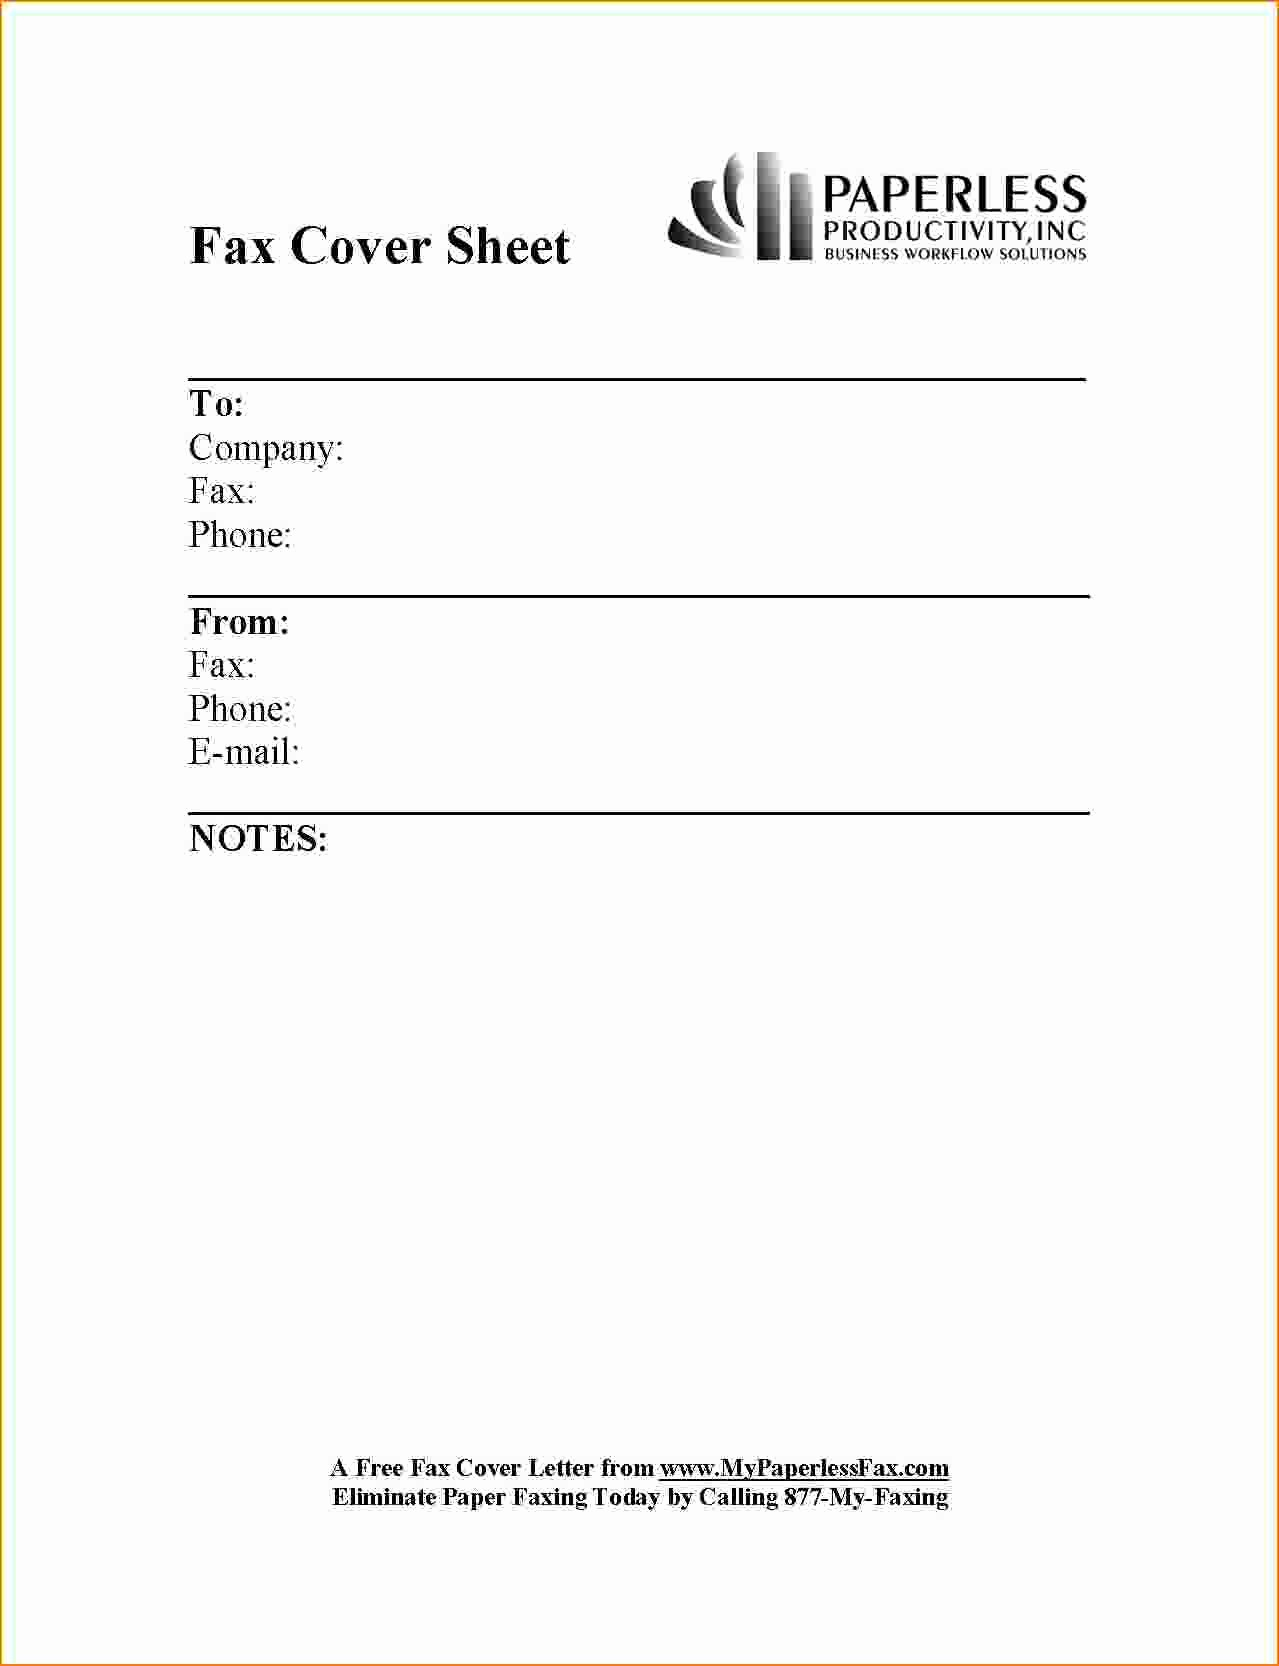 Sample Of Fax Cover Sheets Fresh 6 Example Fax Cover Sheet